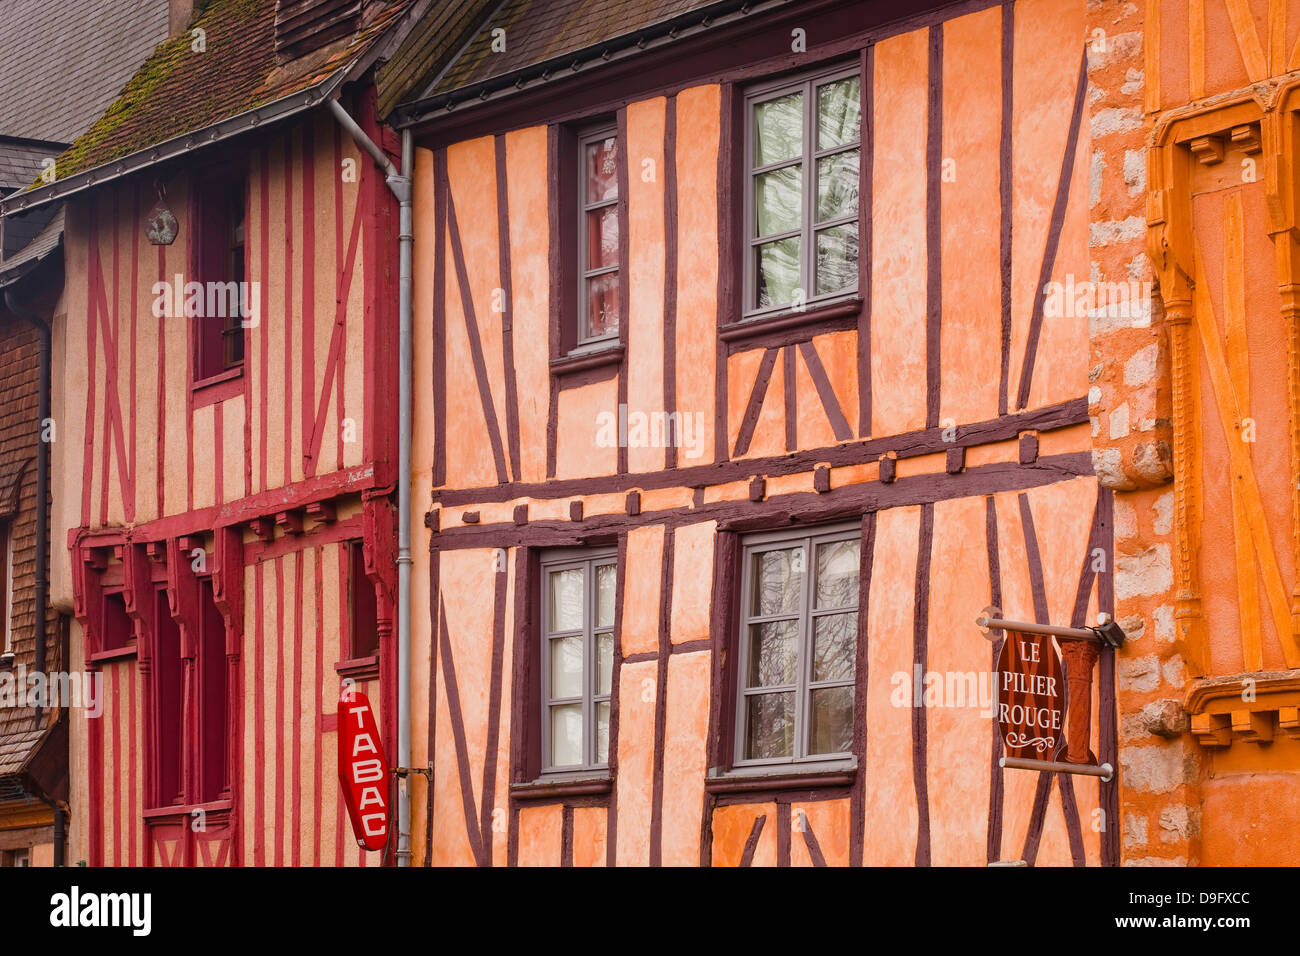 Half timbered houses in the old town of Le Mans, Sarthe, Pays de la Loire, France - Stock Image